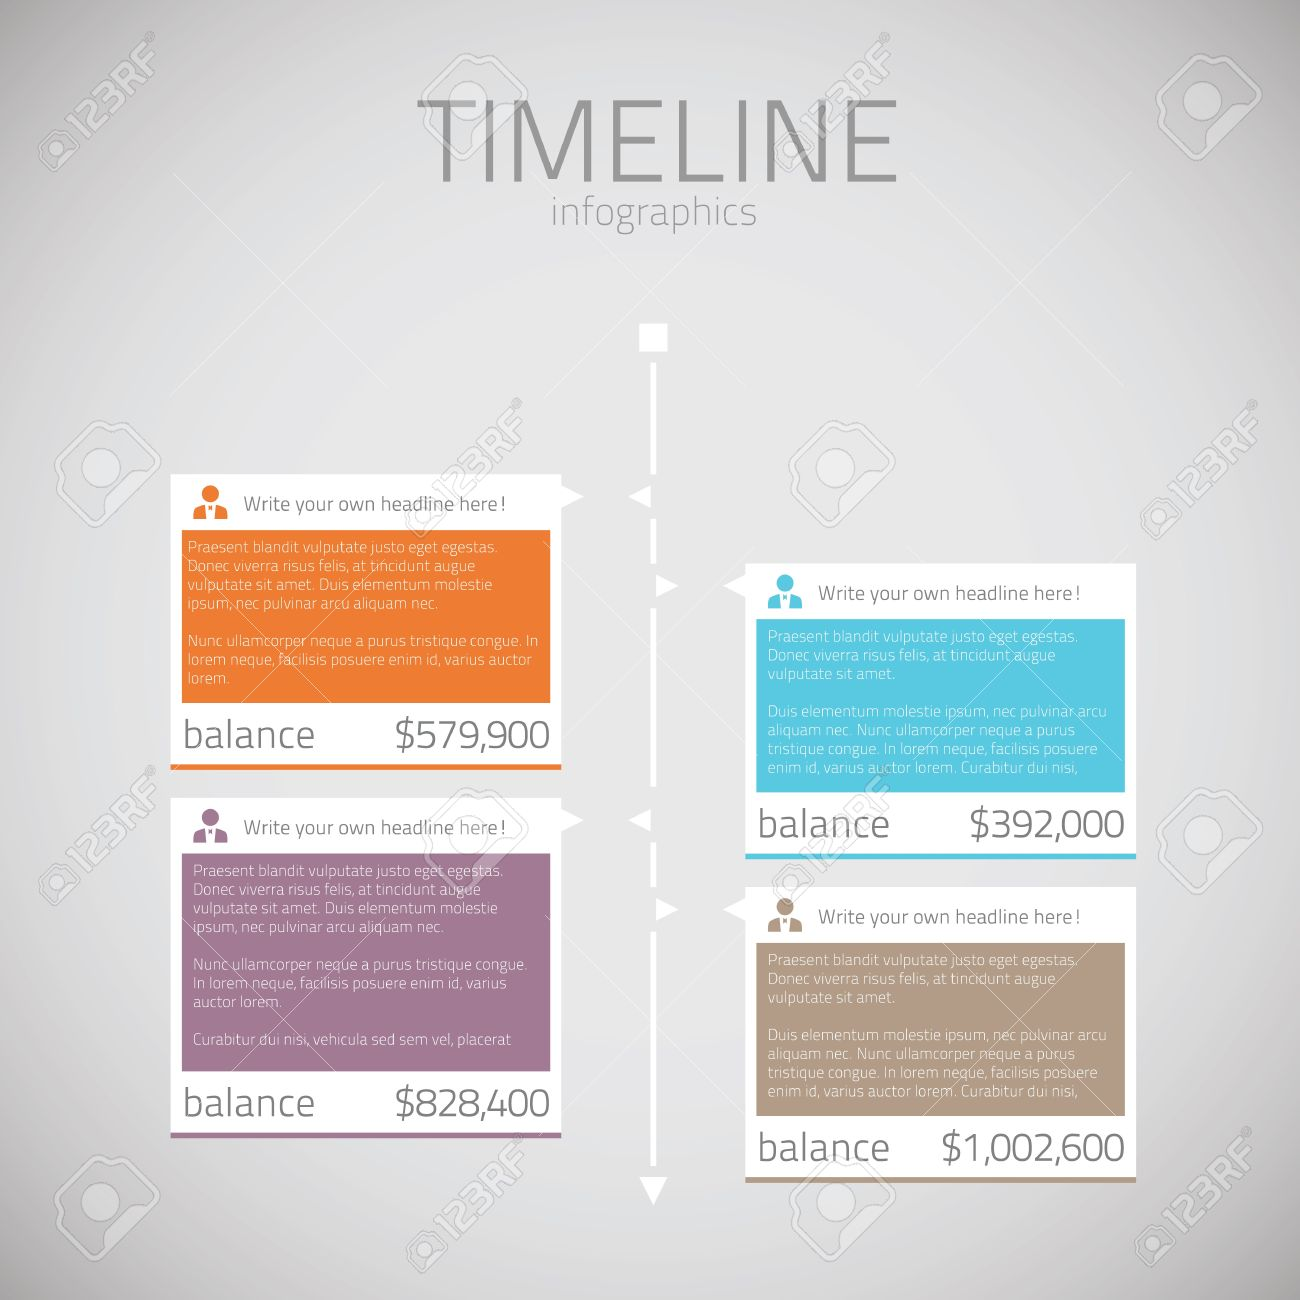 Timeline Infographic Template Vector Royalty Free Cliparts - Timeline html template